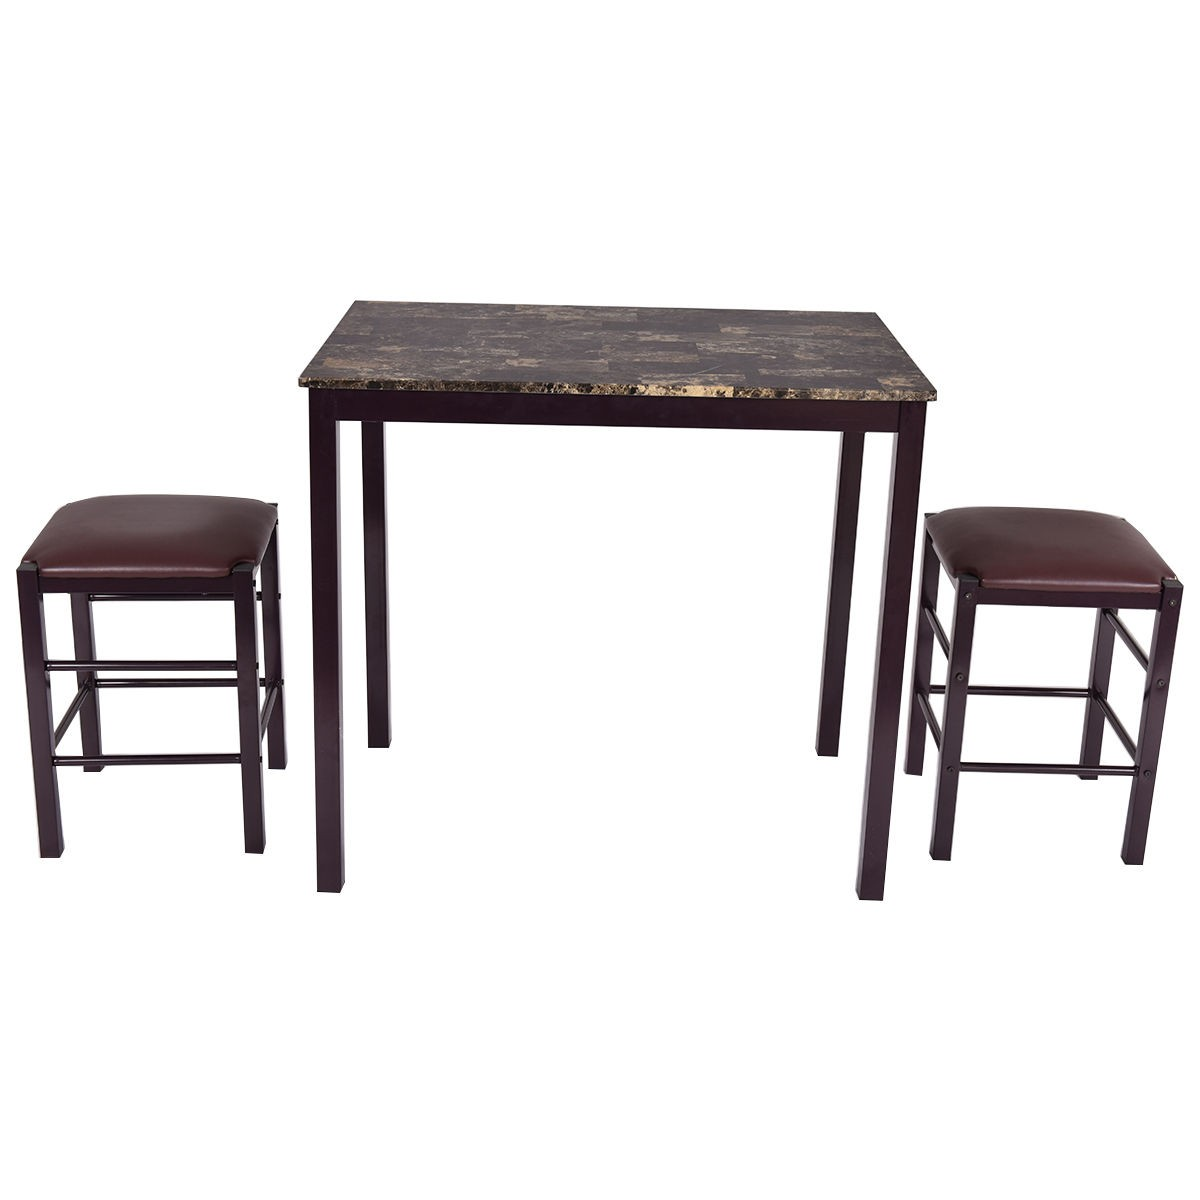 3 Pcs Dining Counter Height Set Faux Marble Table 2 Chairs